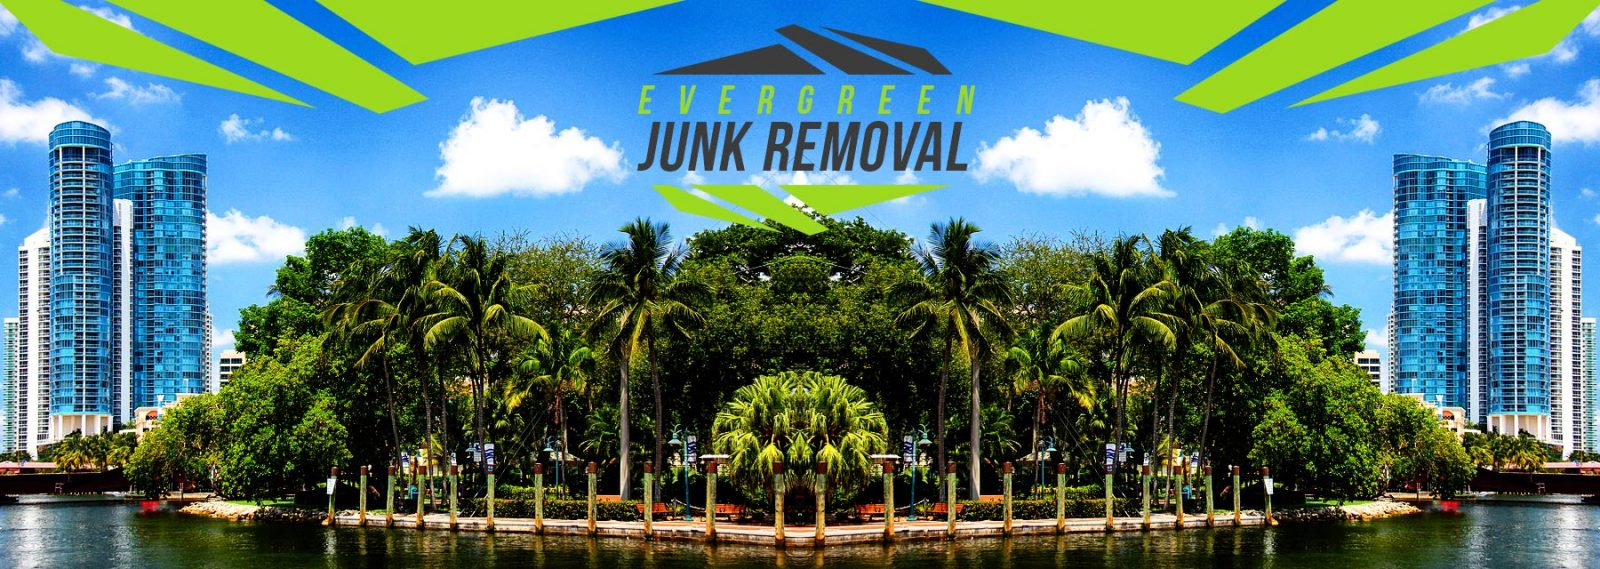 Miami Hot Tub Removal Company